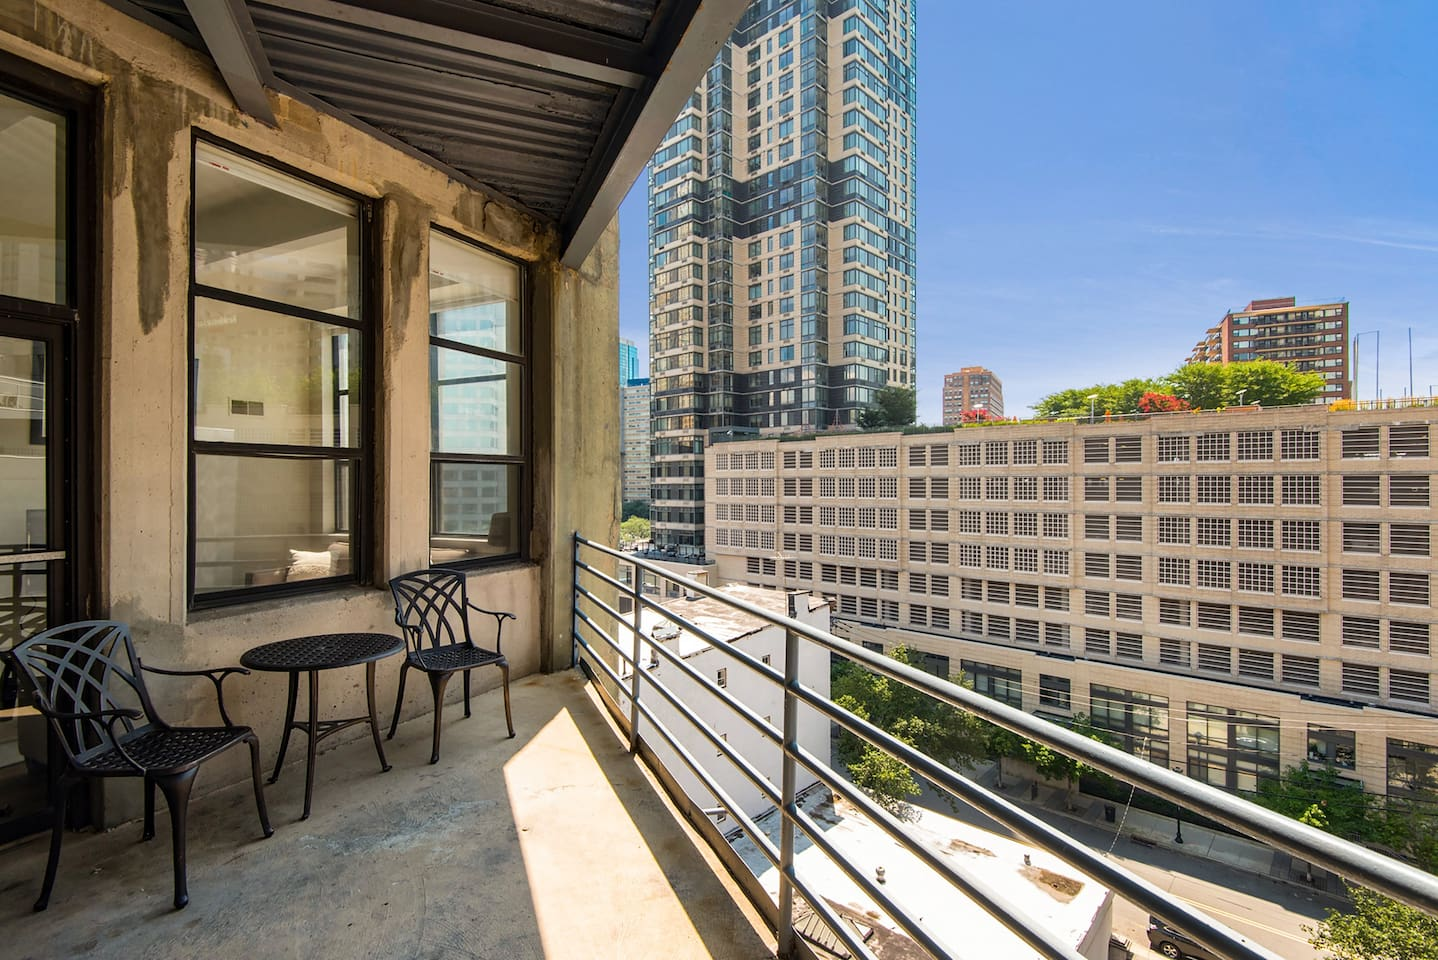 Private balcony with outdoor seating and table, with stunning city views